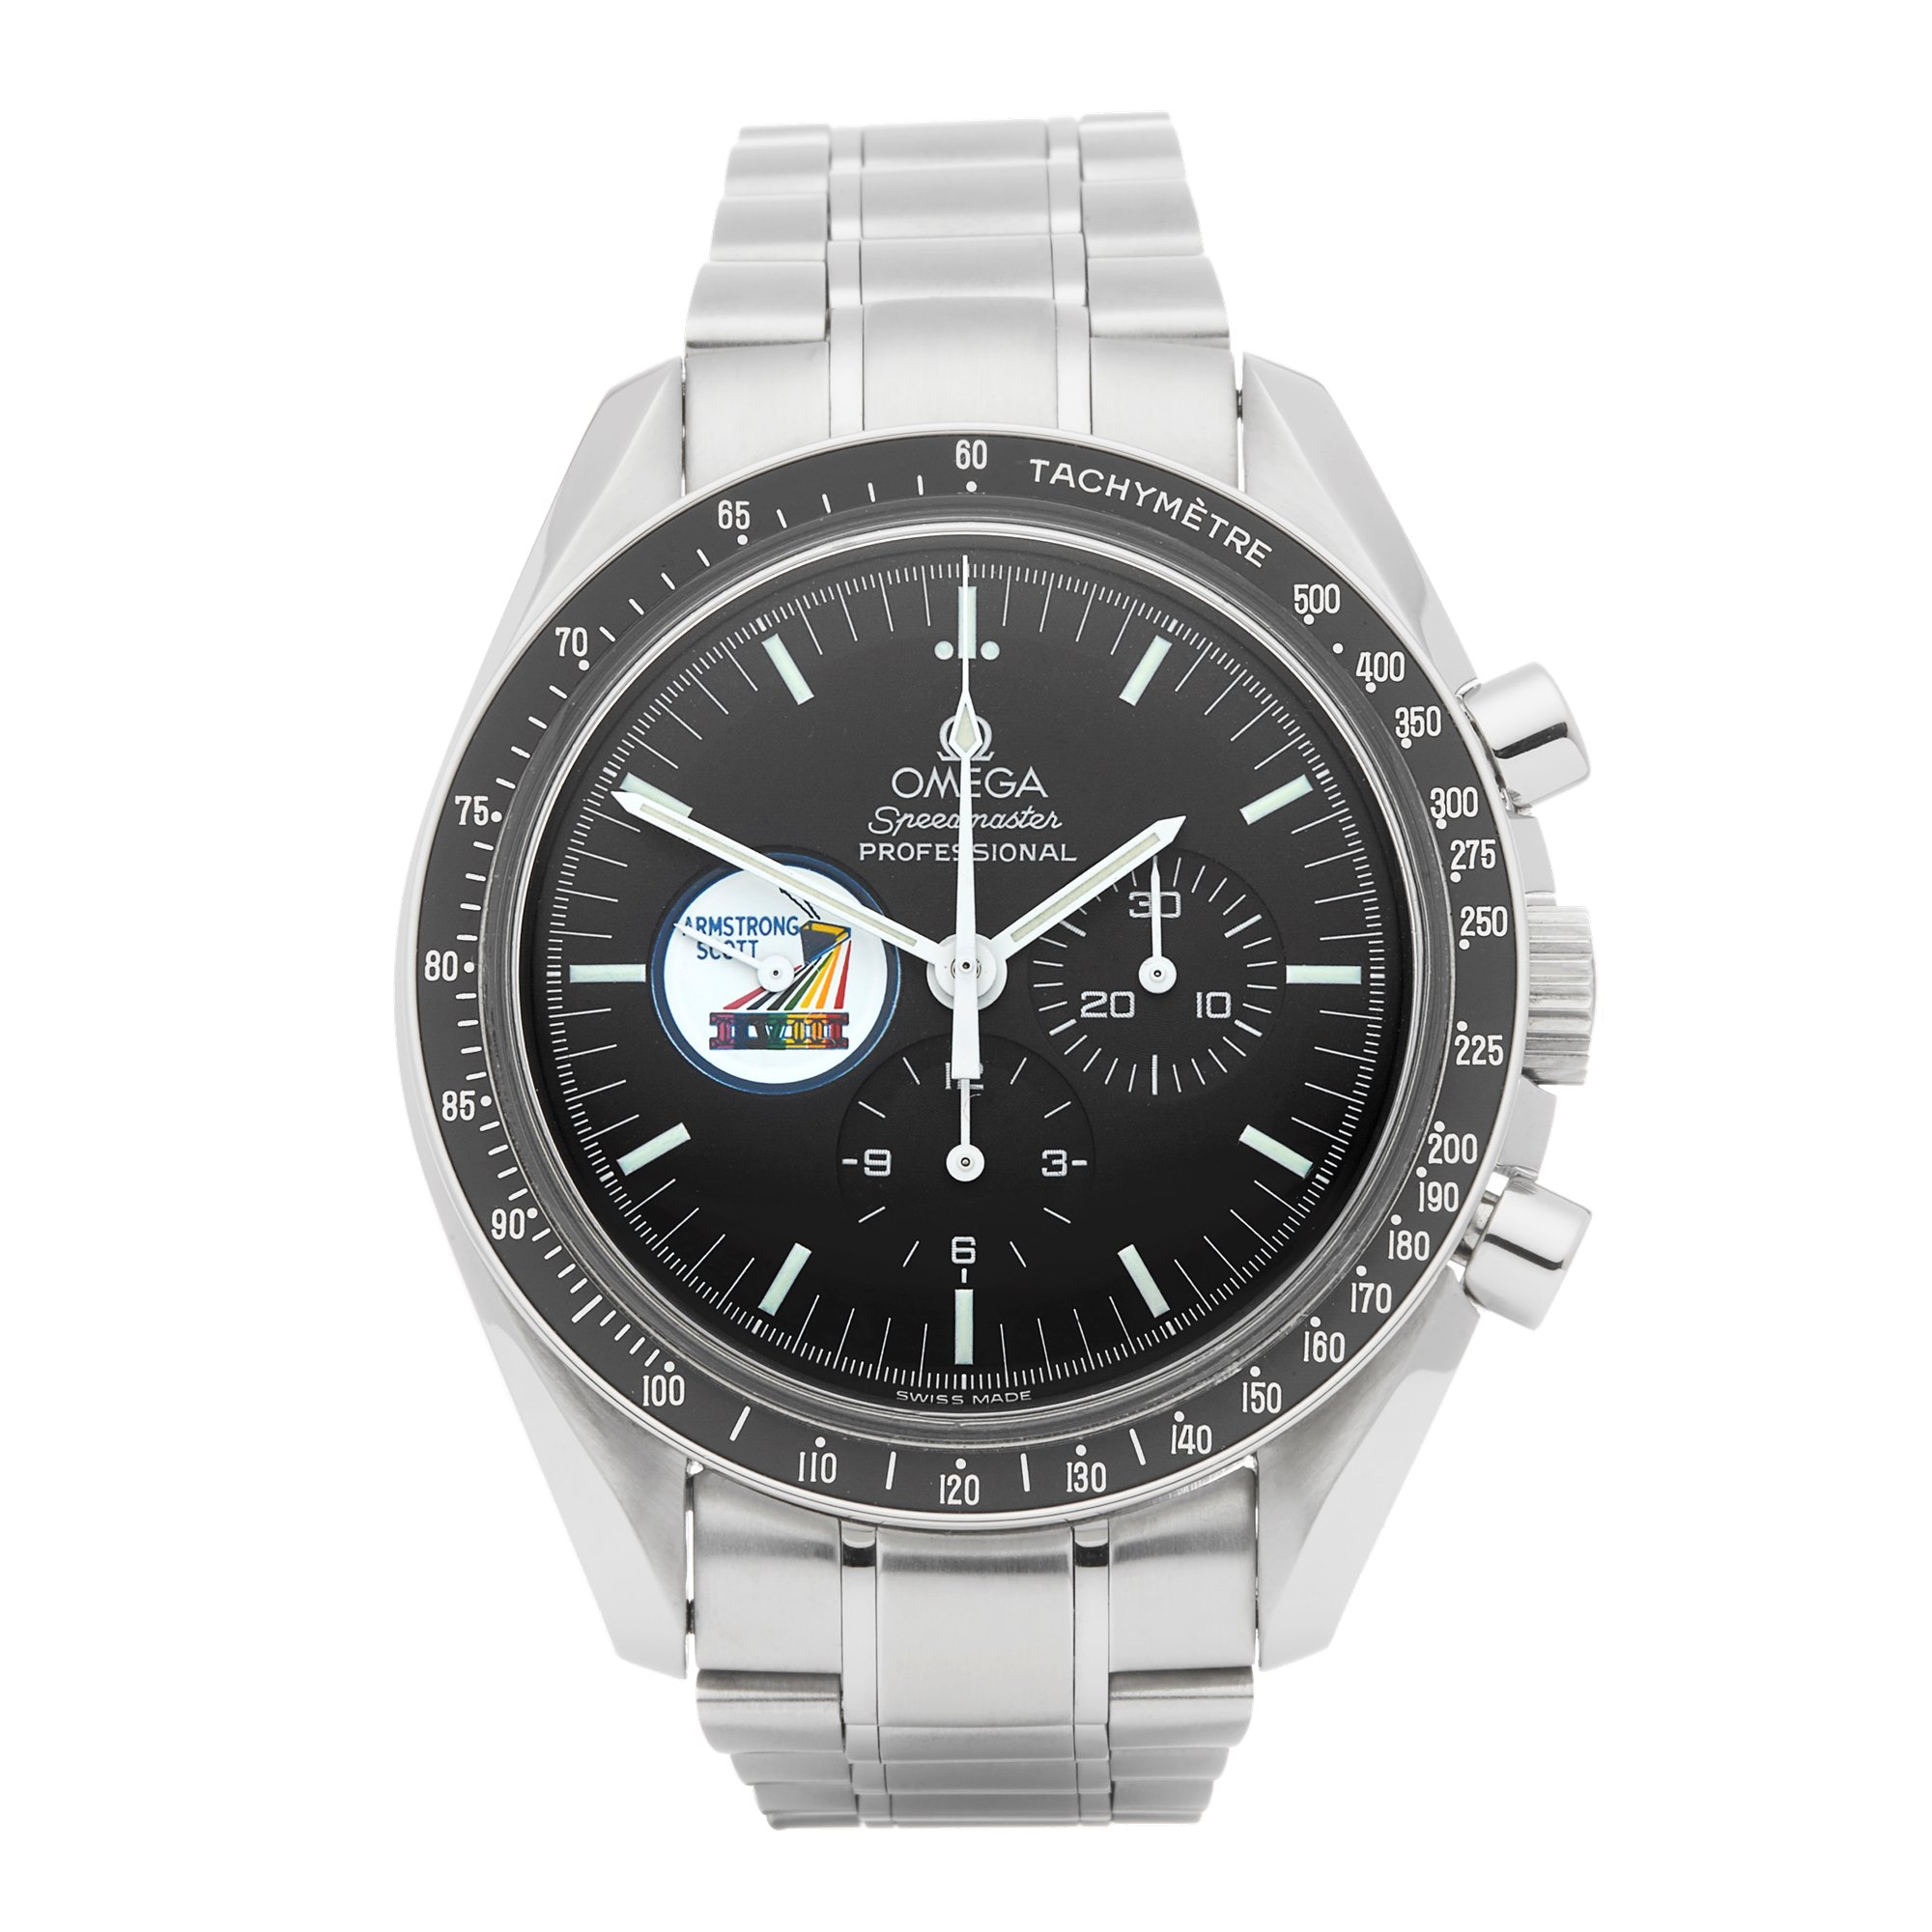 Omega Speedmaster Missions Scott Armstrong IIVIII Chronograph Stainless Steel 145.0022 35970600